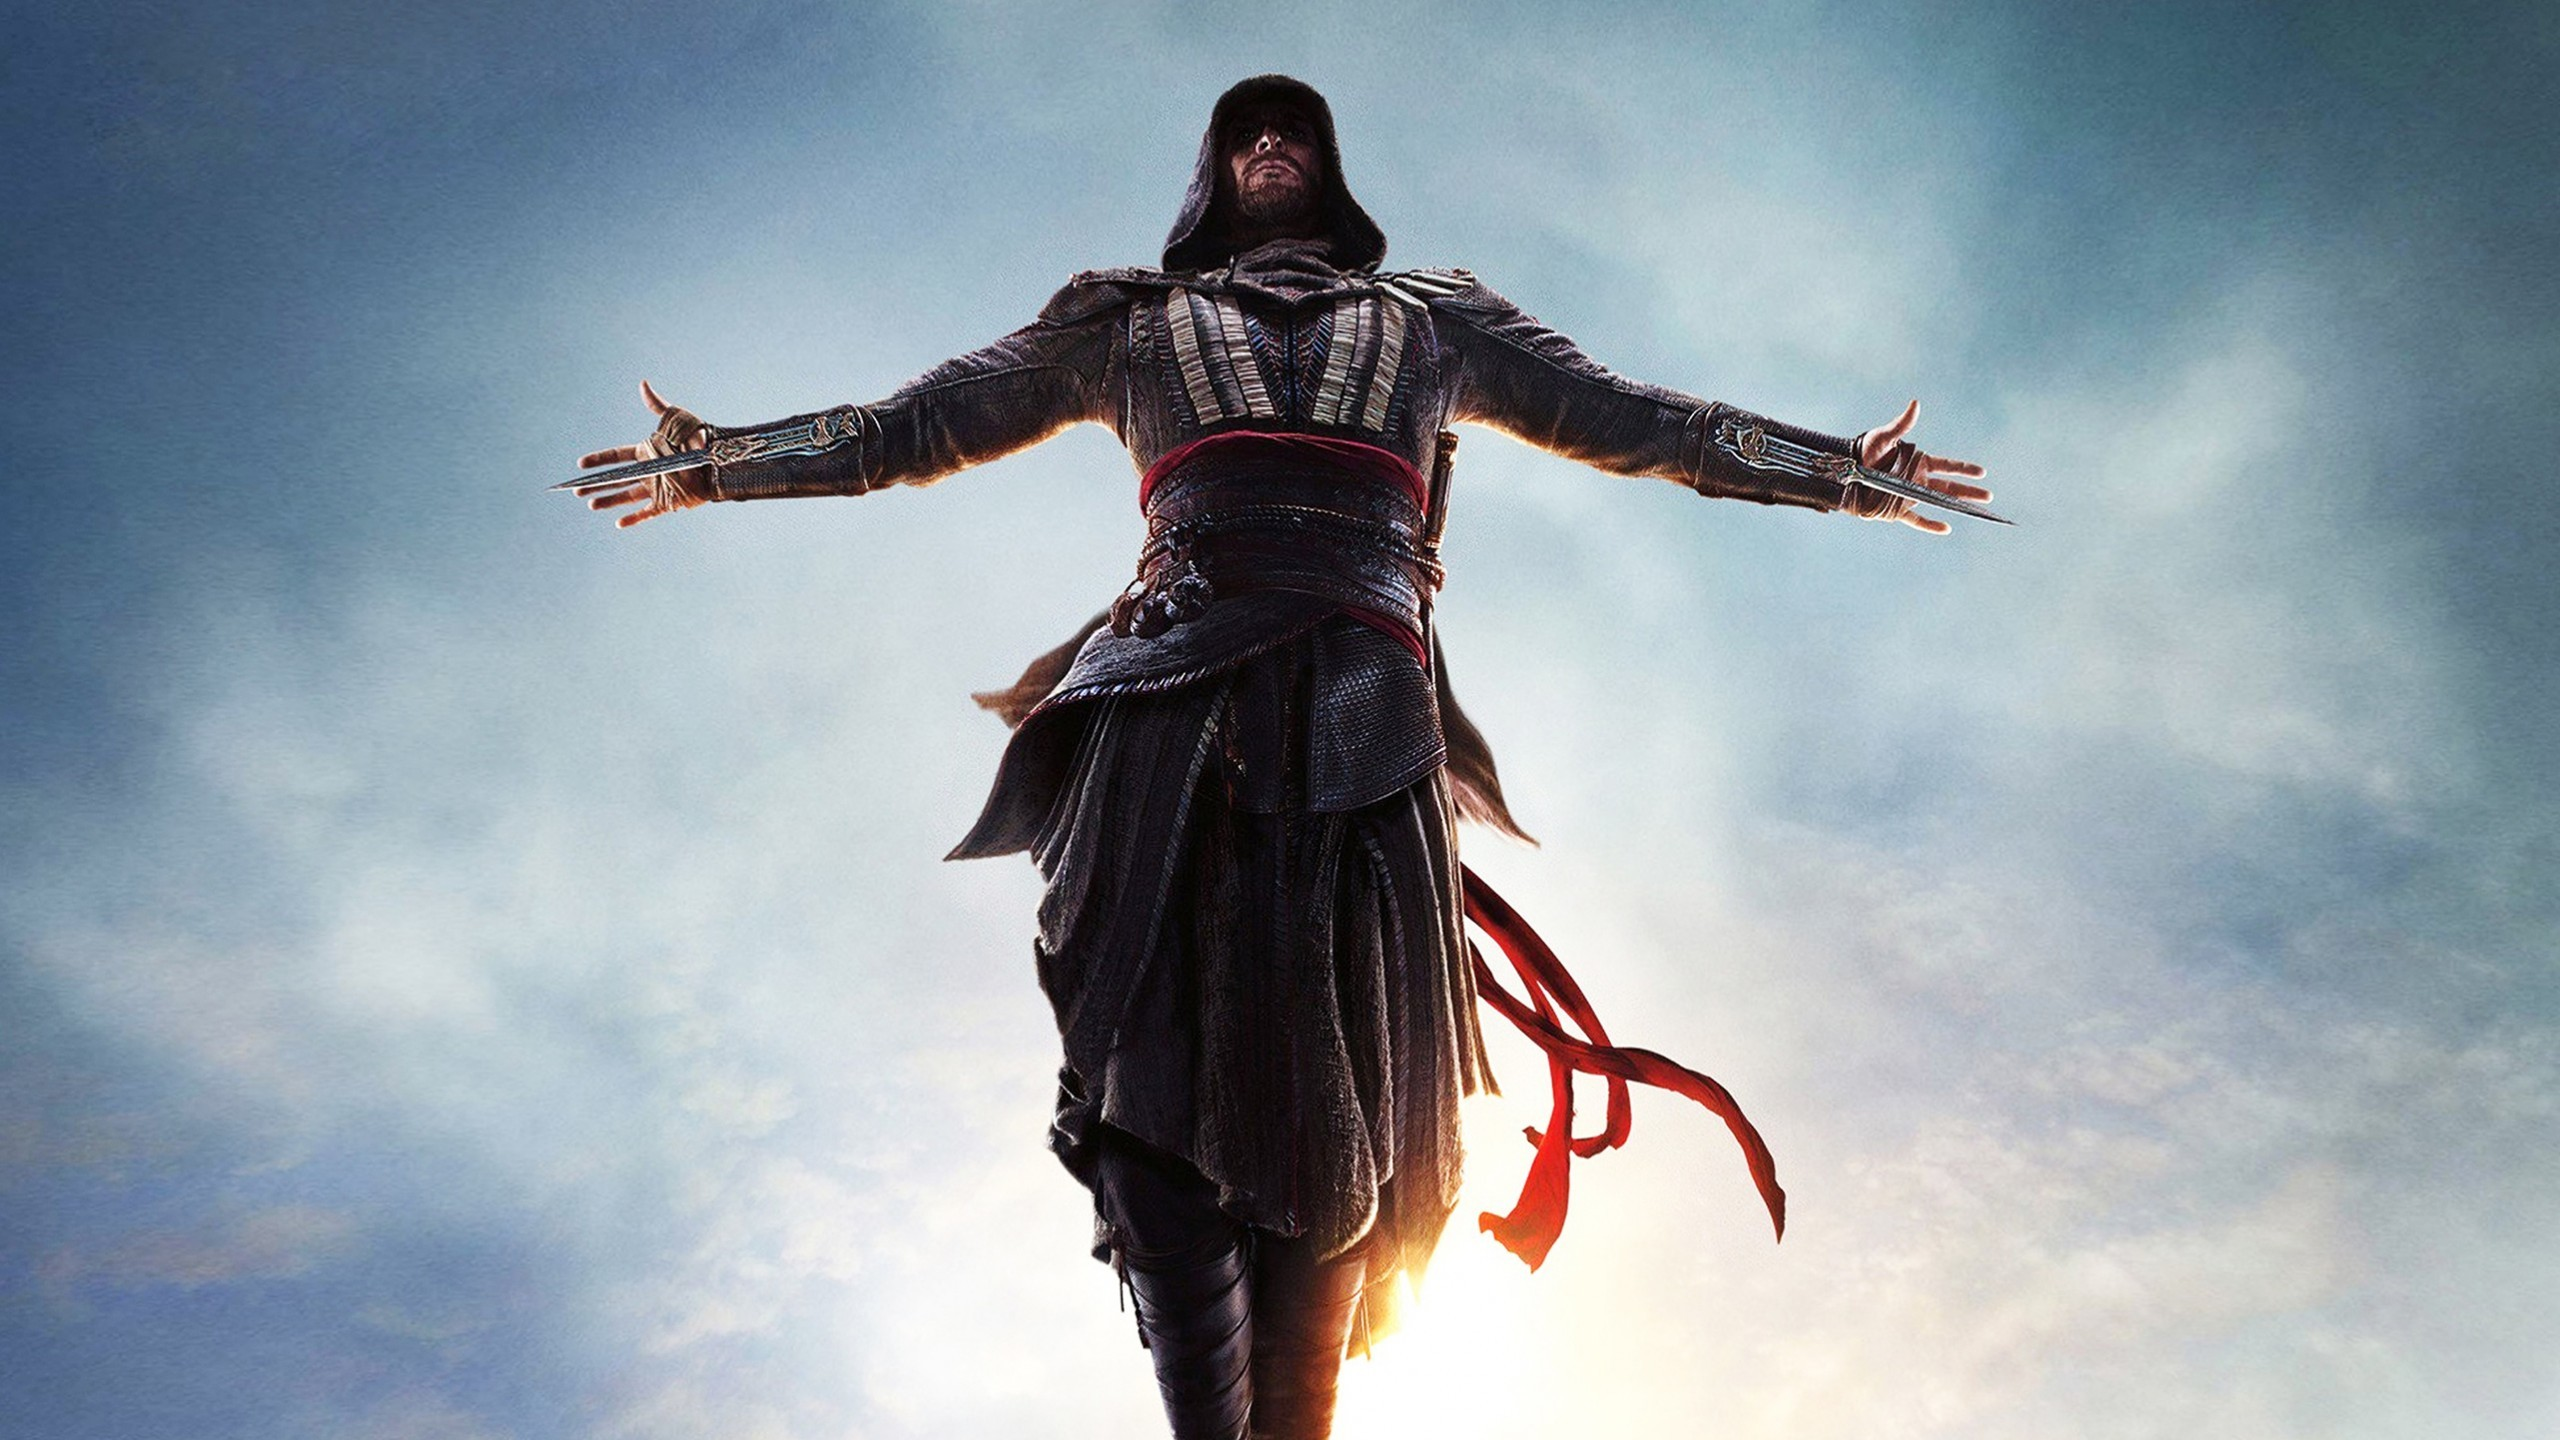 assassin creed hd wallpapers 1080p,sky,fun,photography,fictional character,costume